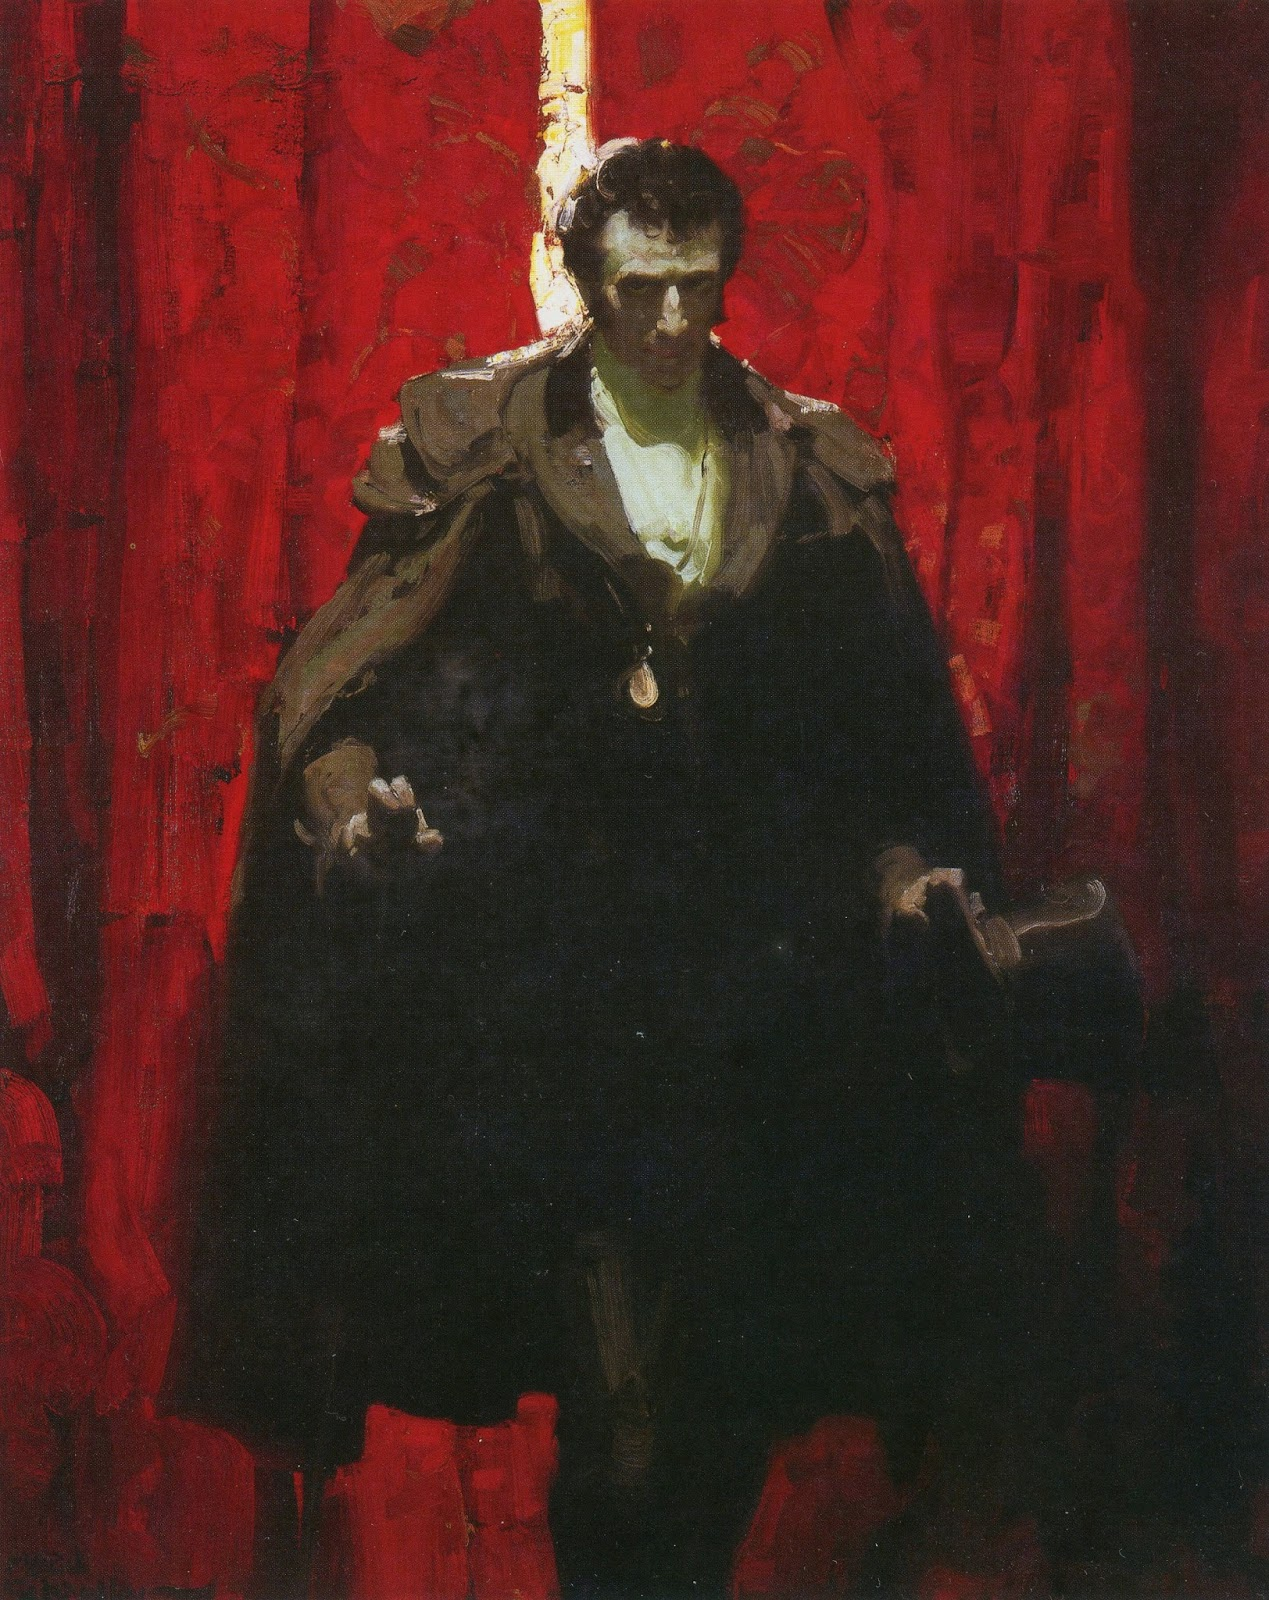 illustration art mead schaeffer a closer look the count of monte cristo from the kelly collection of american illustration